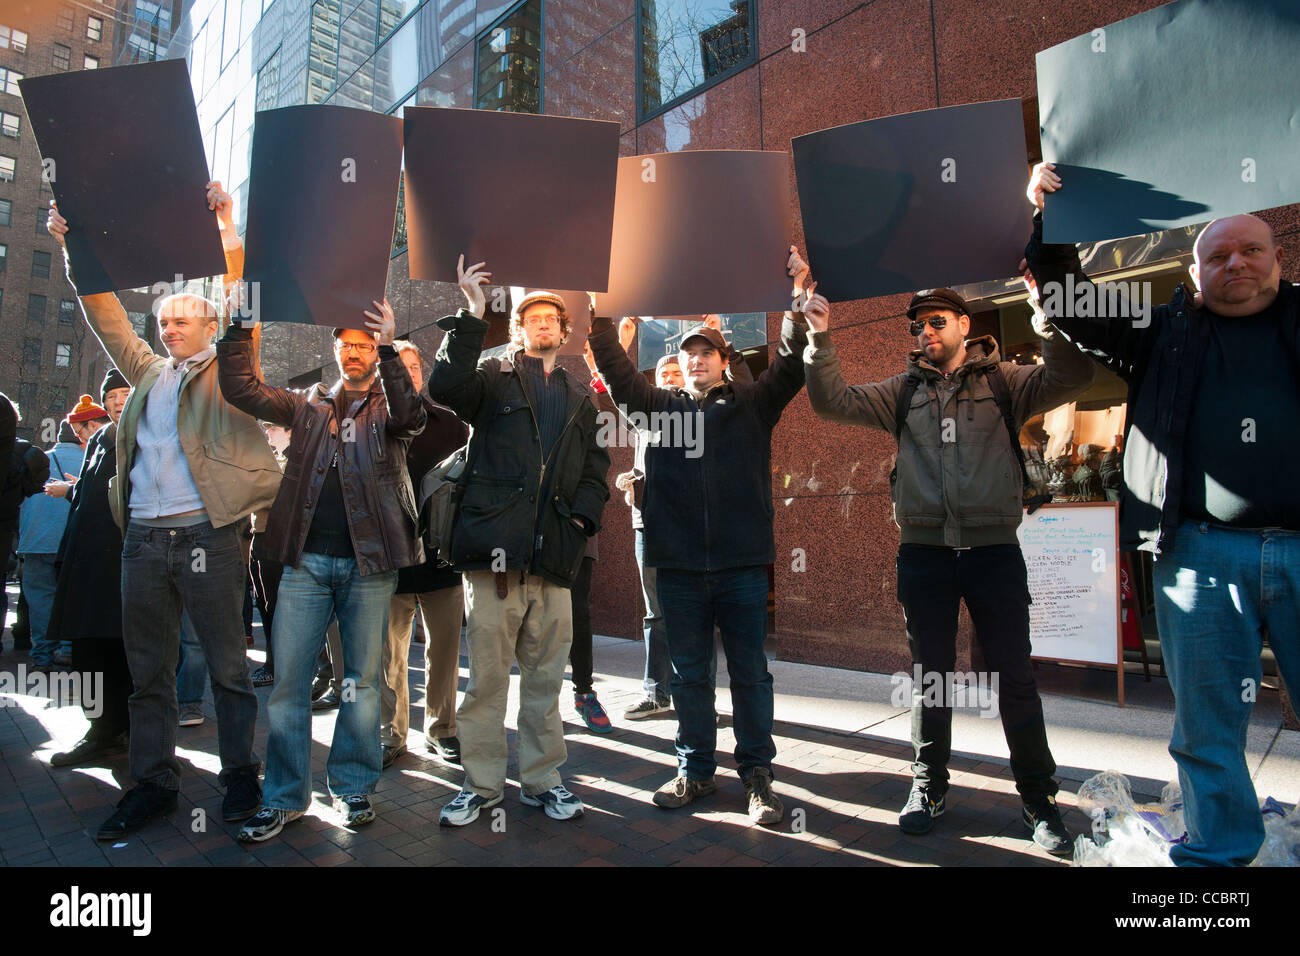 NY Tech Meetup group protest in New York over legislation concerning online piracy. - Stock Image